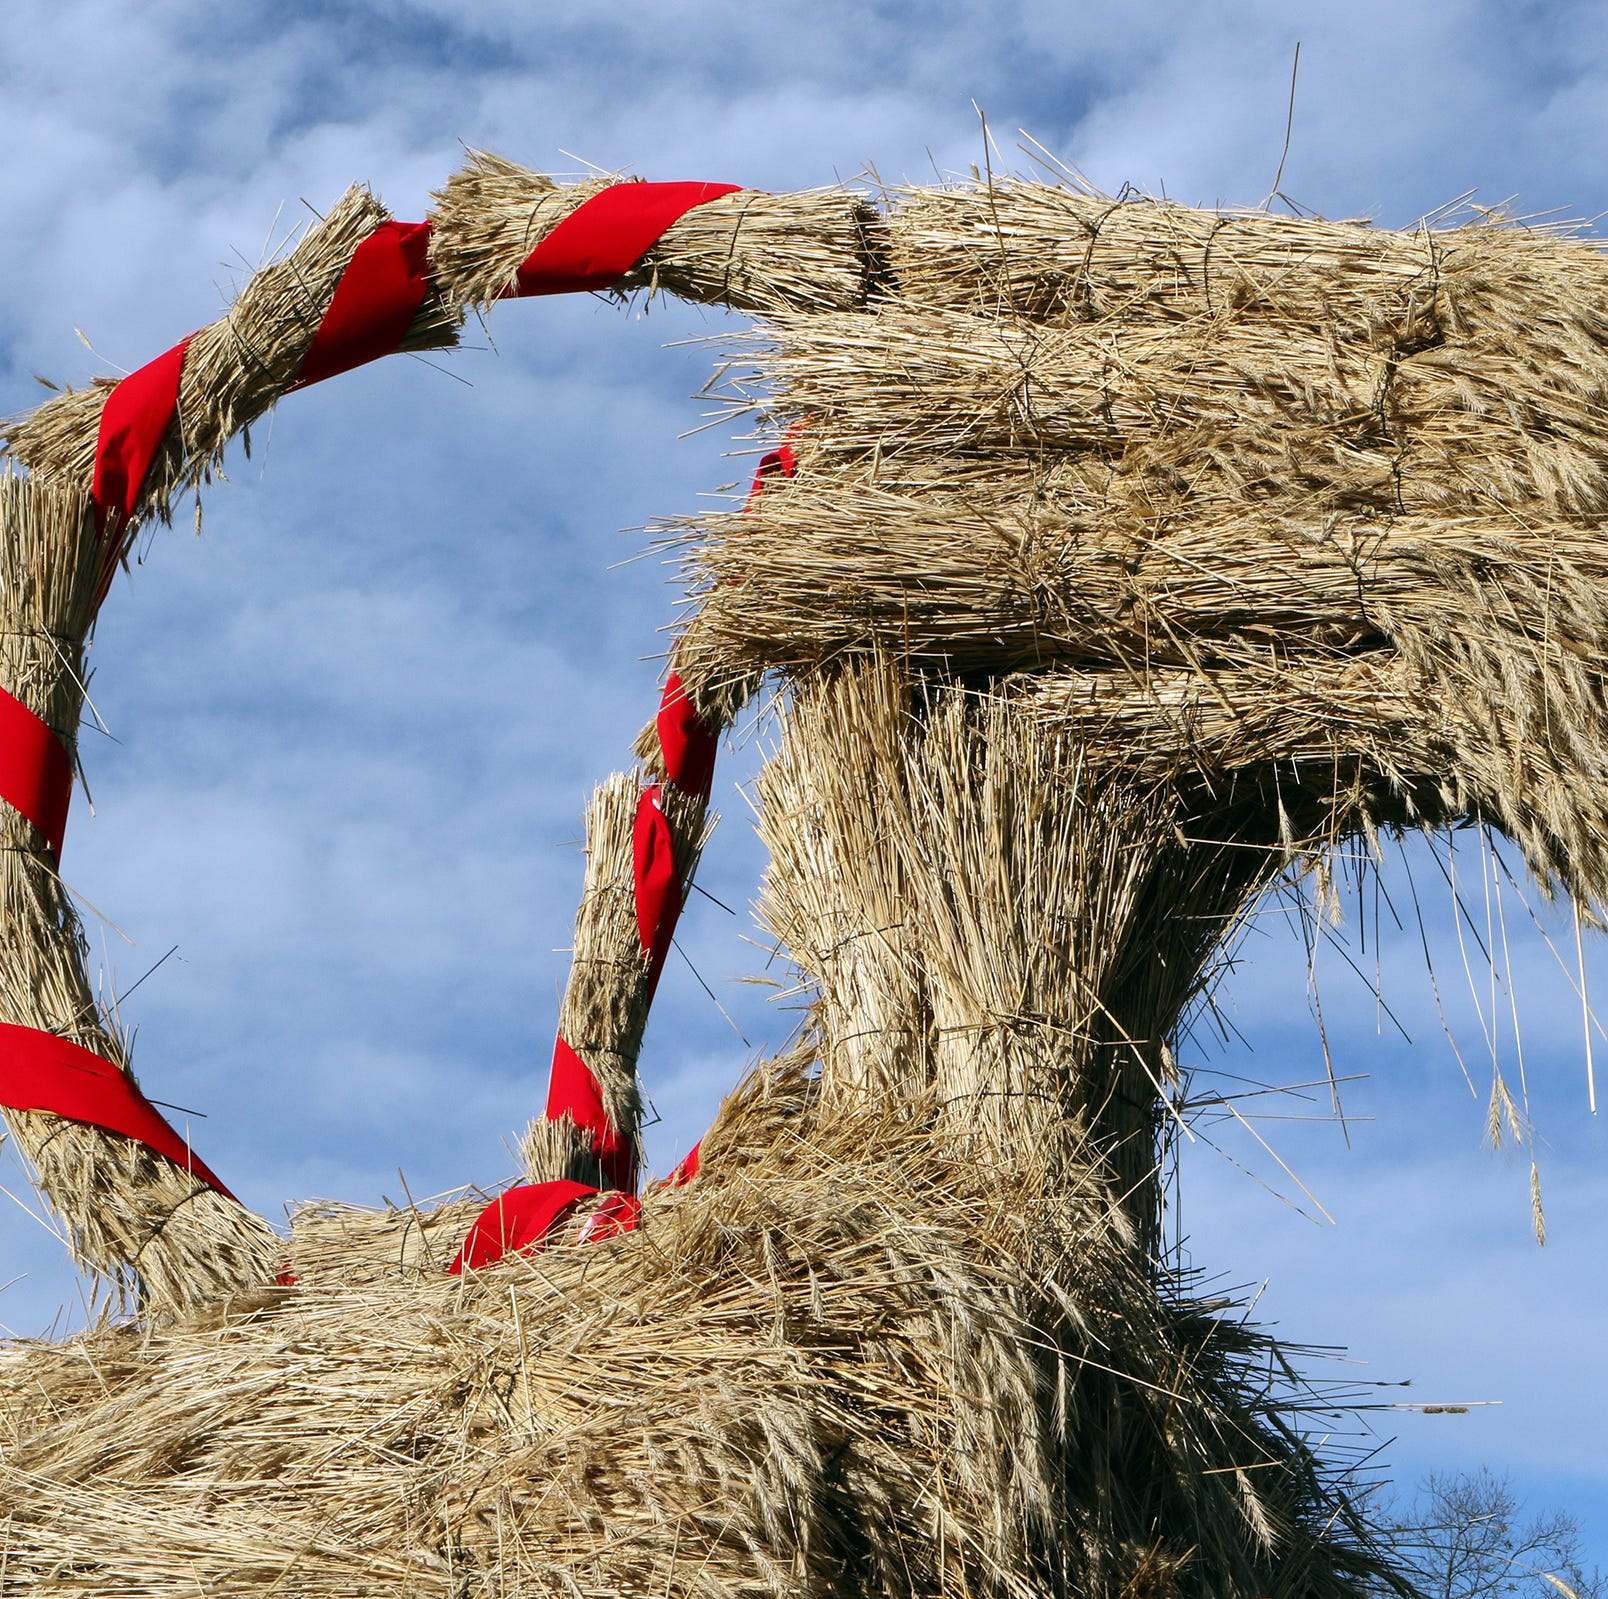 A Yule goat for the holidays - and for good crops